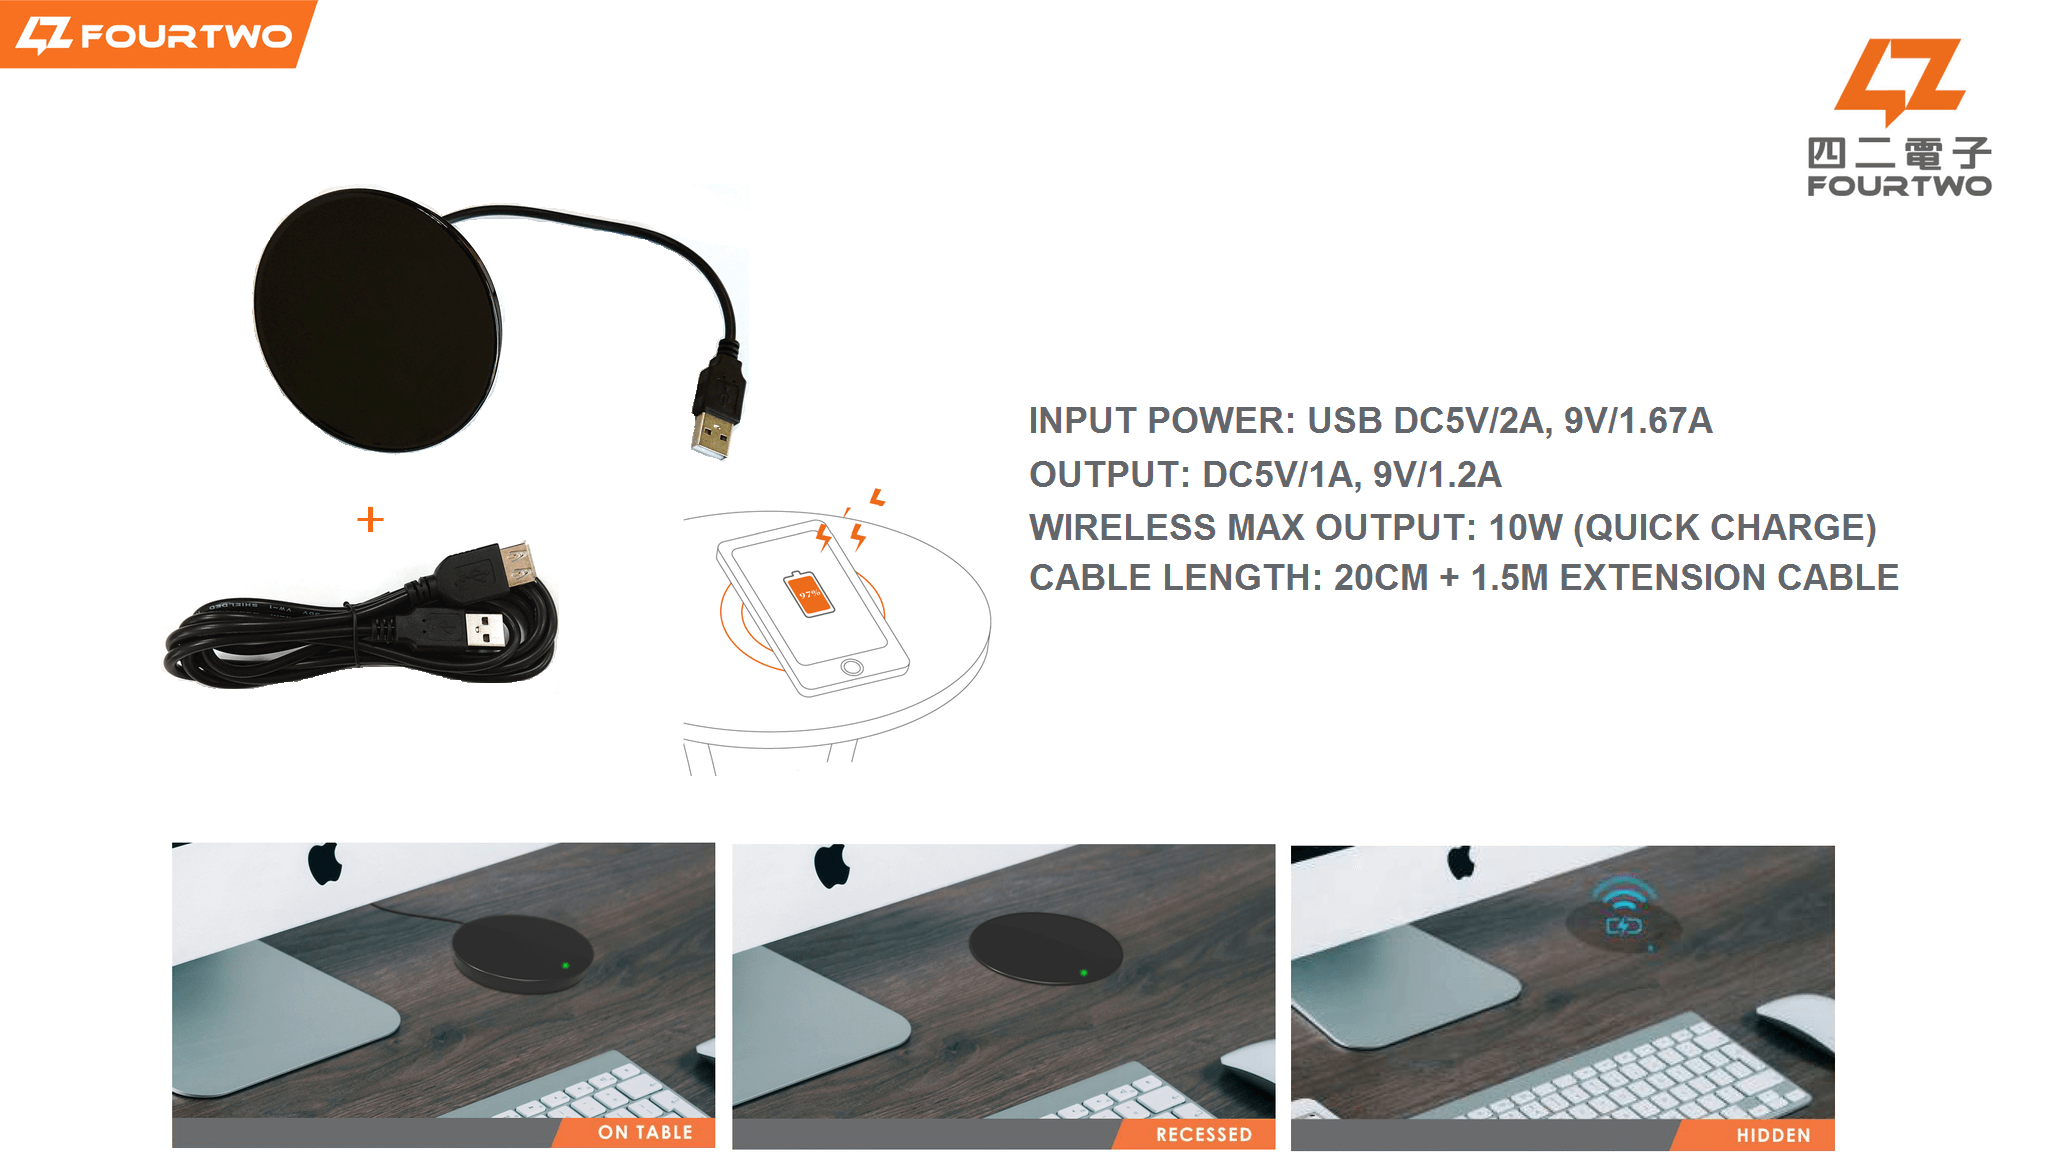 FOUR TWO #ST-072 Recessed / Embedded Wireless Charger for furniture